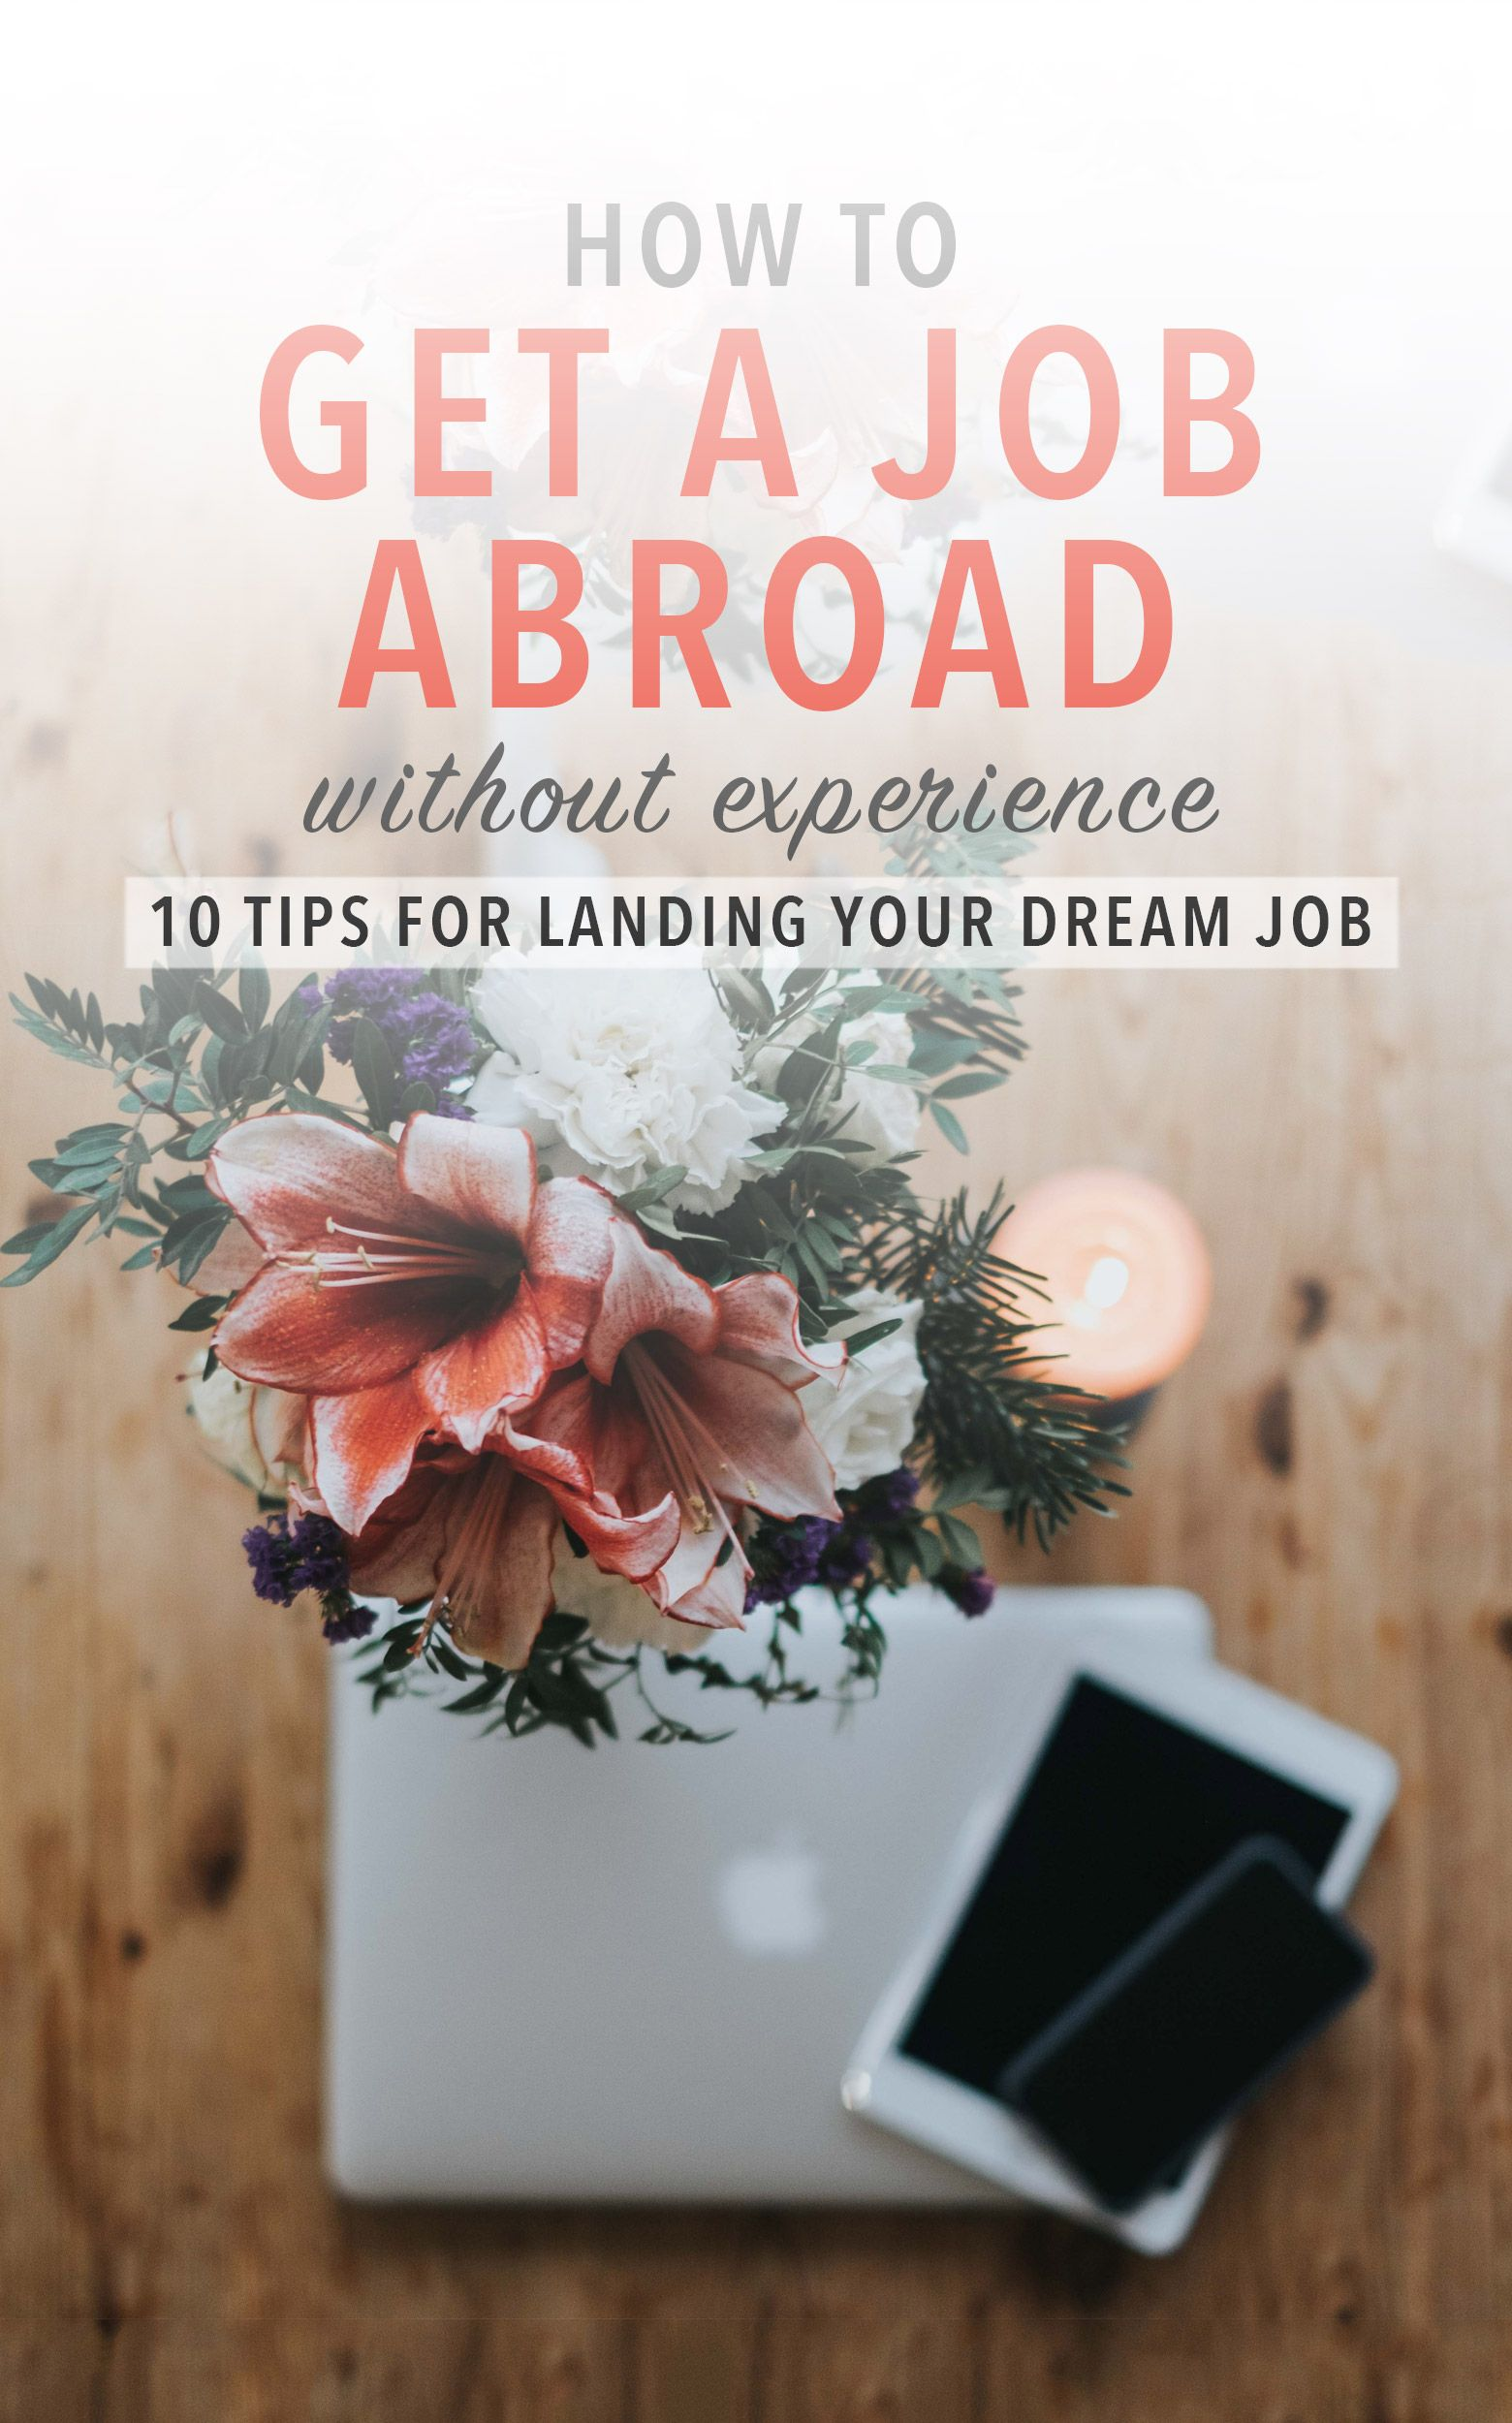 How to Work Abroad Without Experience